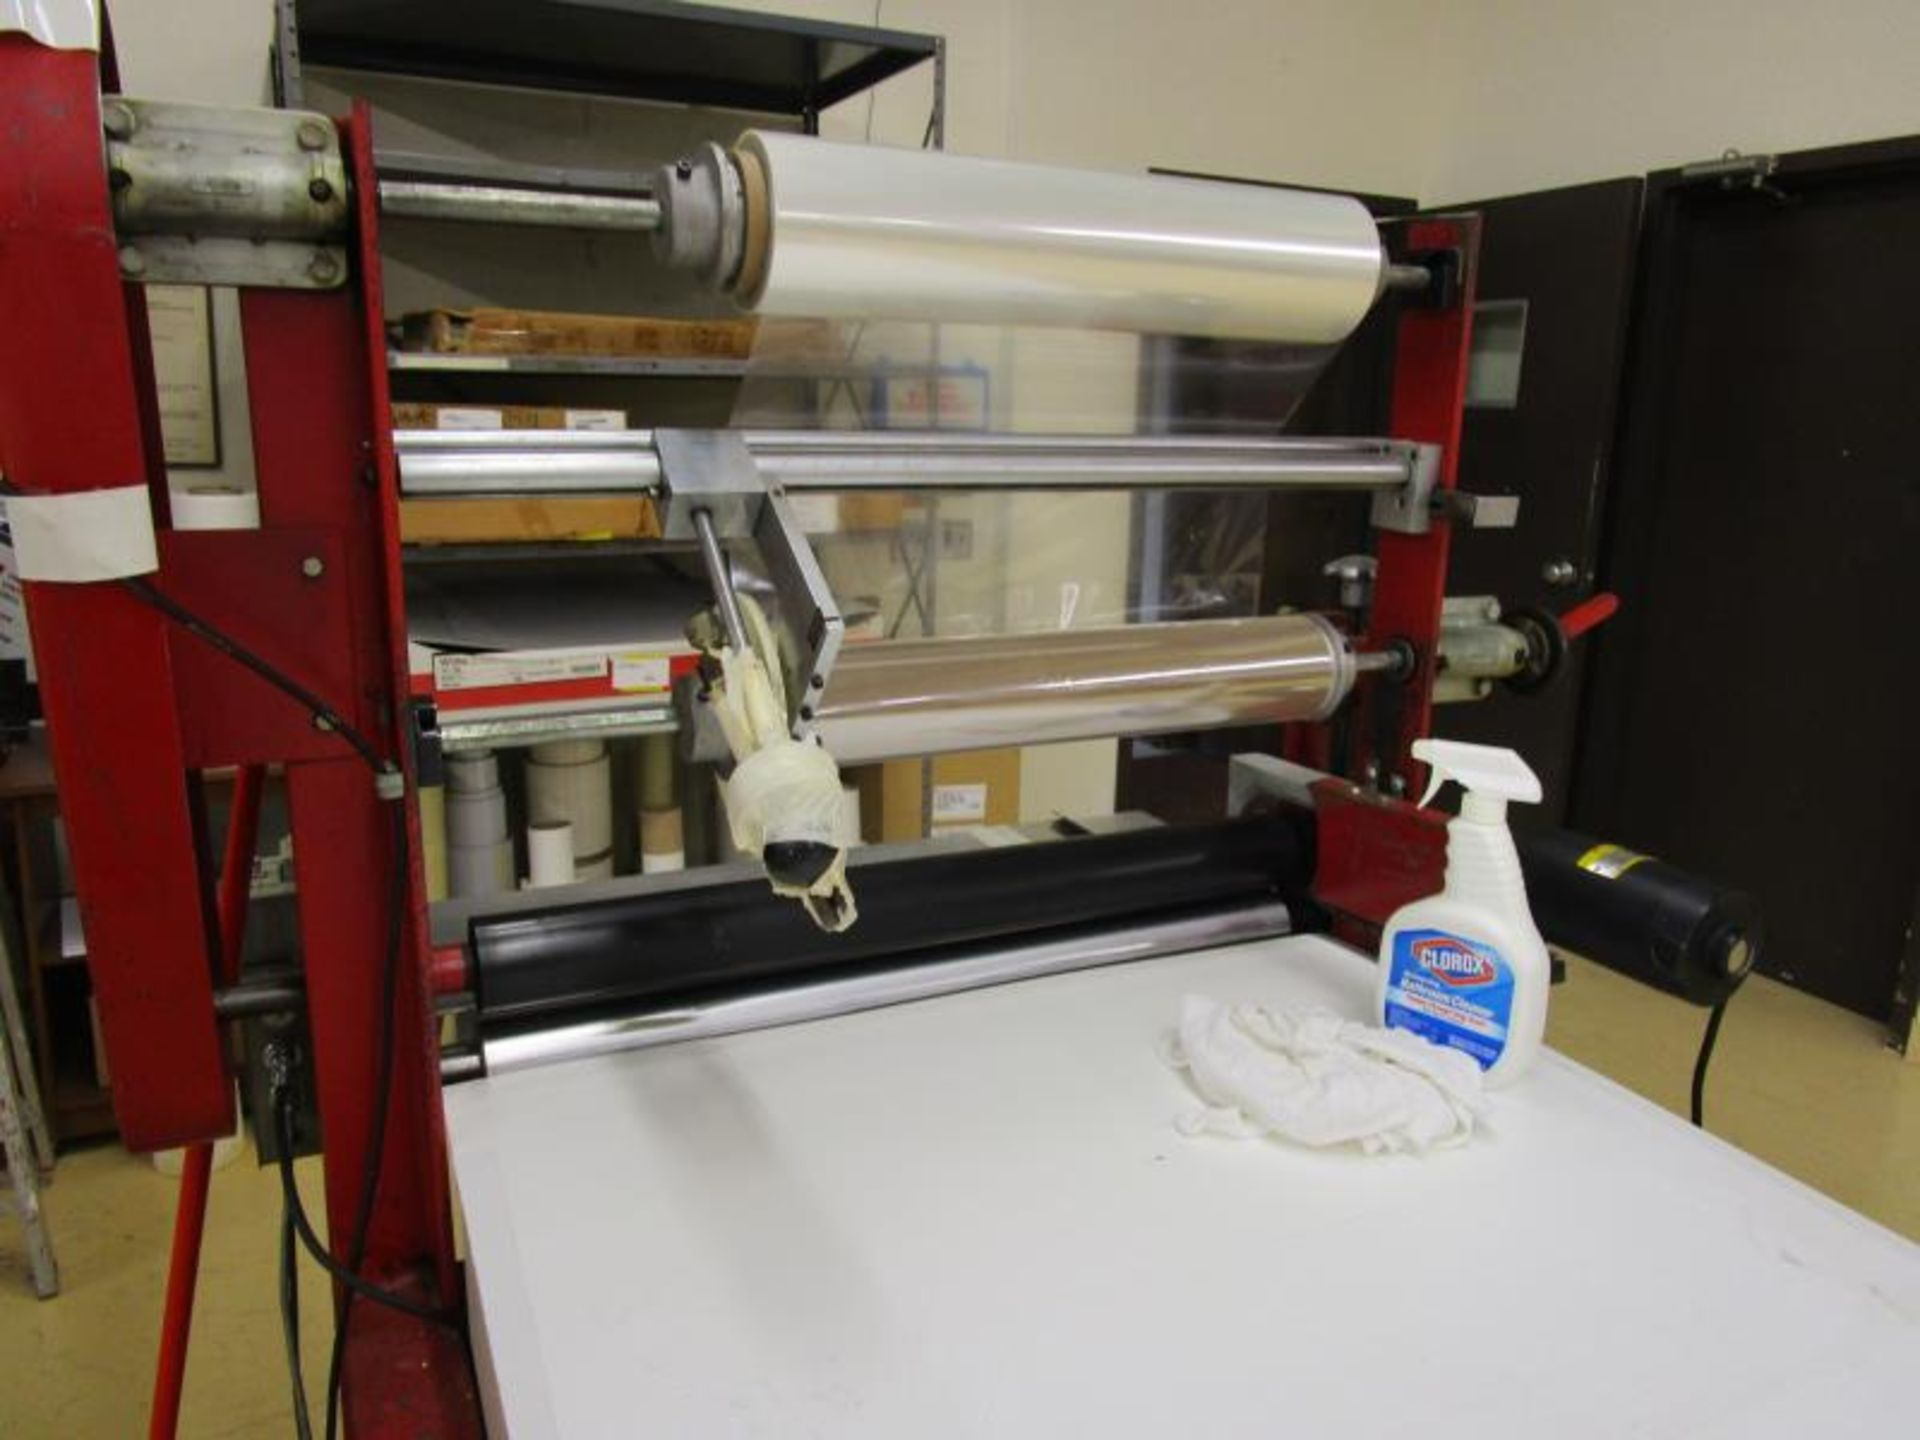 """Cold Roll Laminator, 28"""" Max Roll Size, Speed Controller & Baldor Motor - Image 6 of 6"""